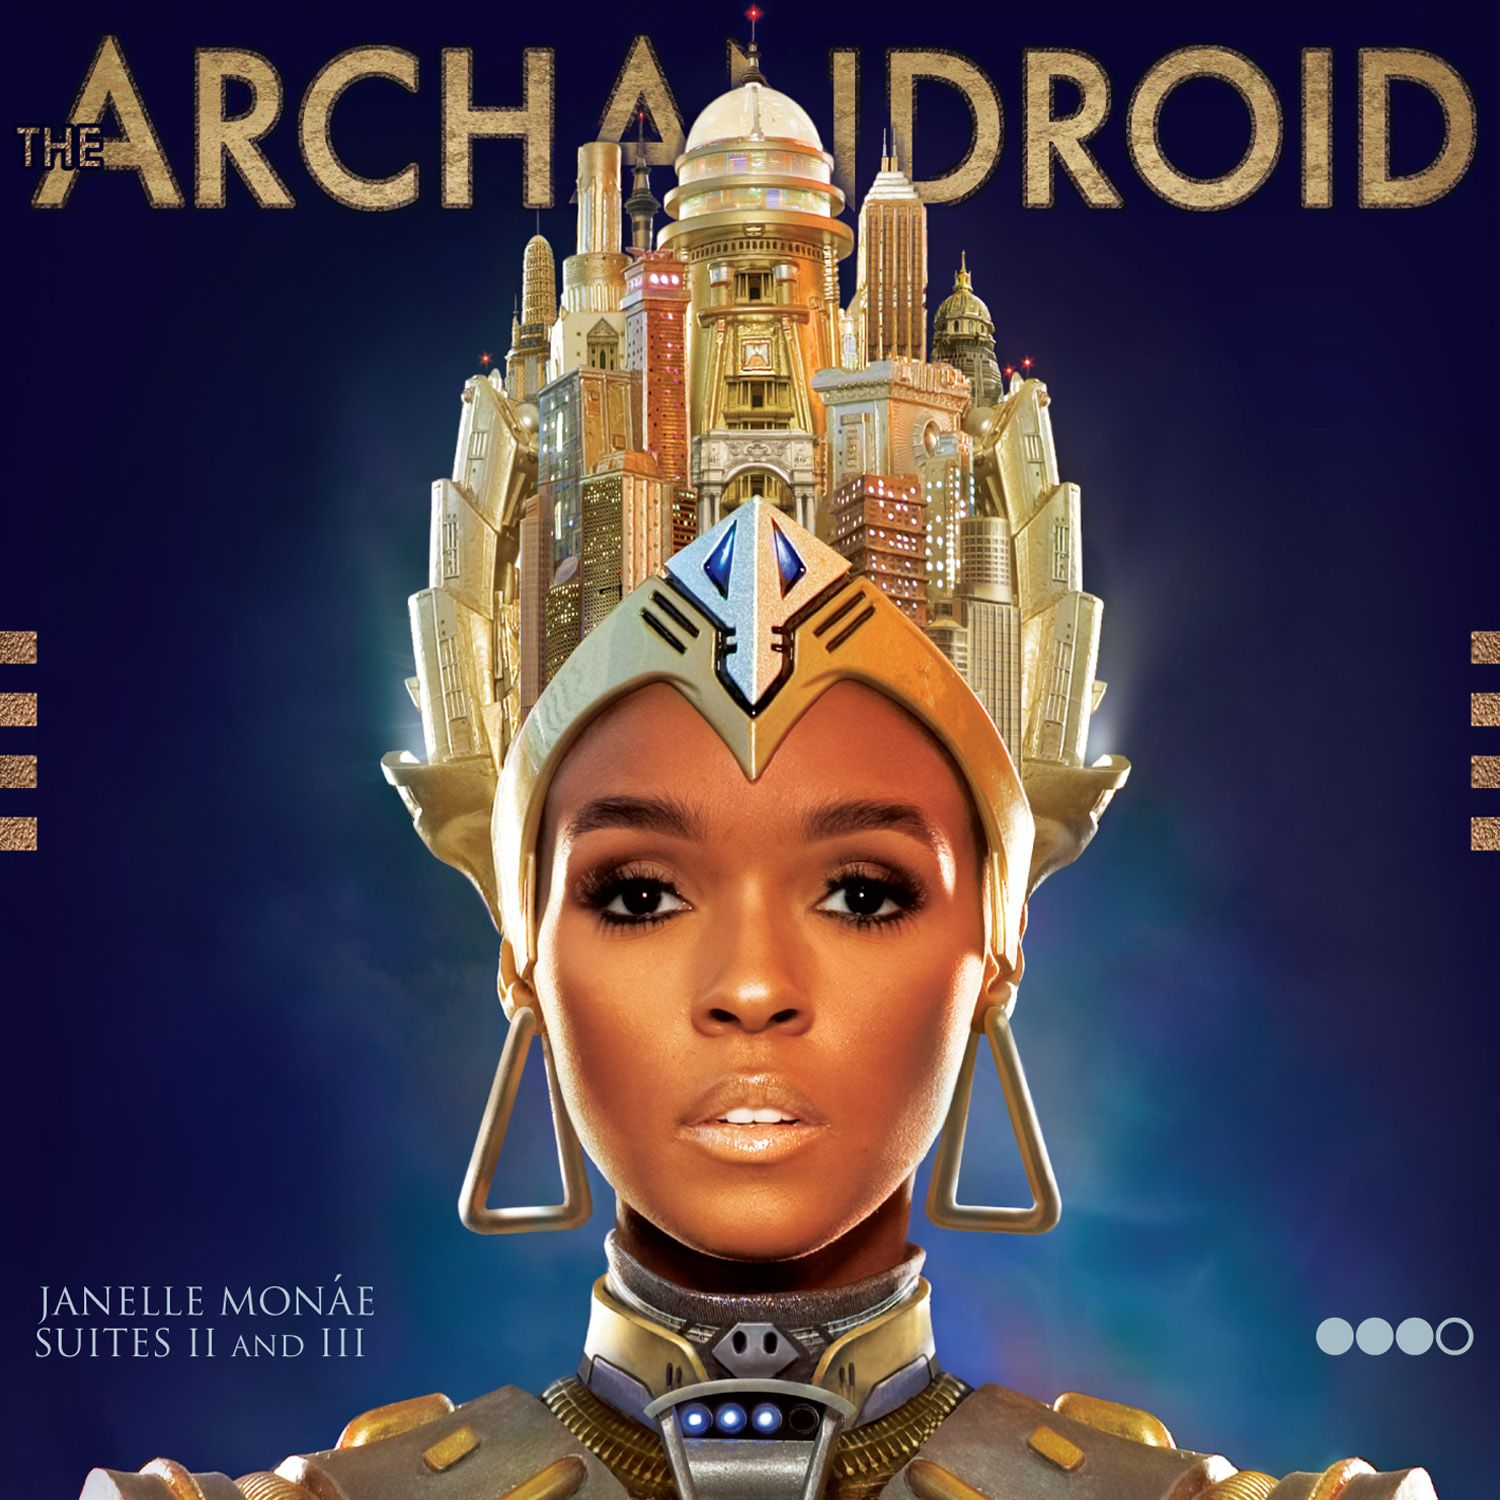 Janelle Monáe - The Archandroid album cover